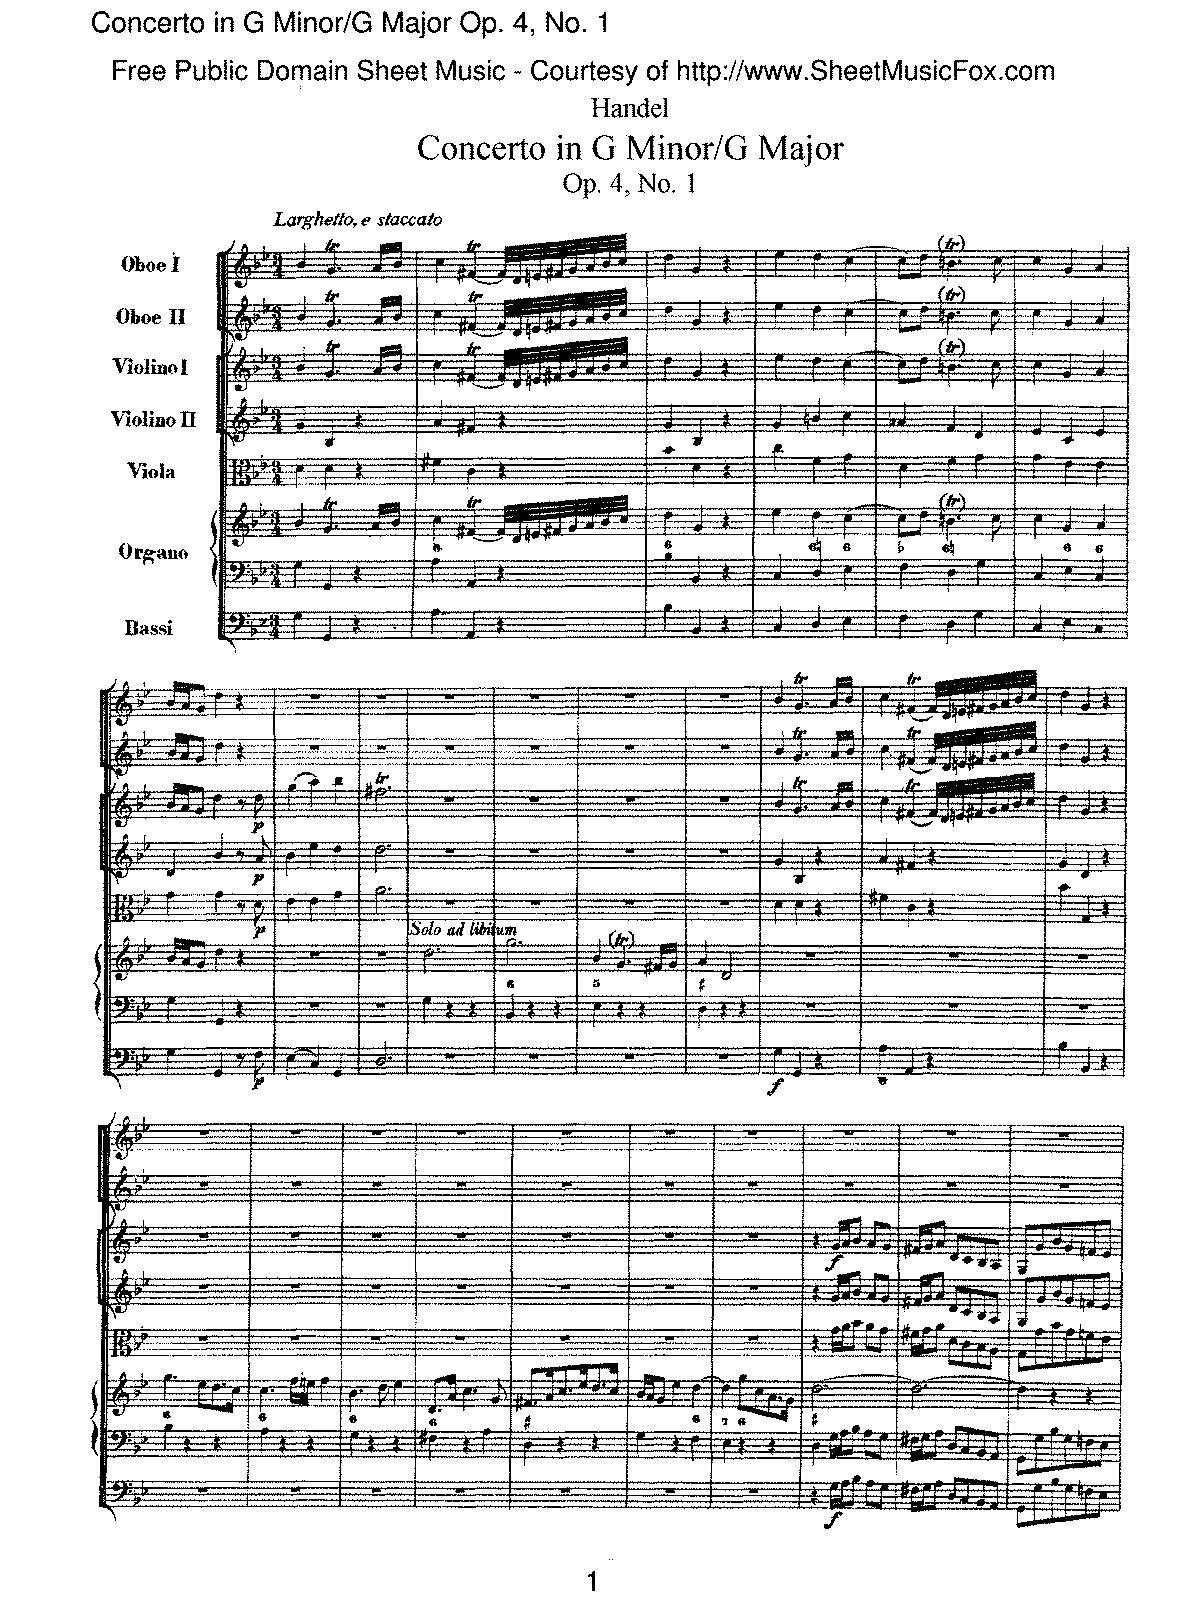 Handel - Concerto in G Minor-G major, Op. 4 No. 1.pdf